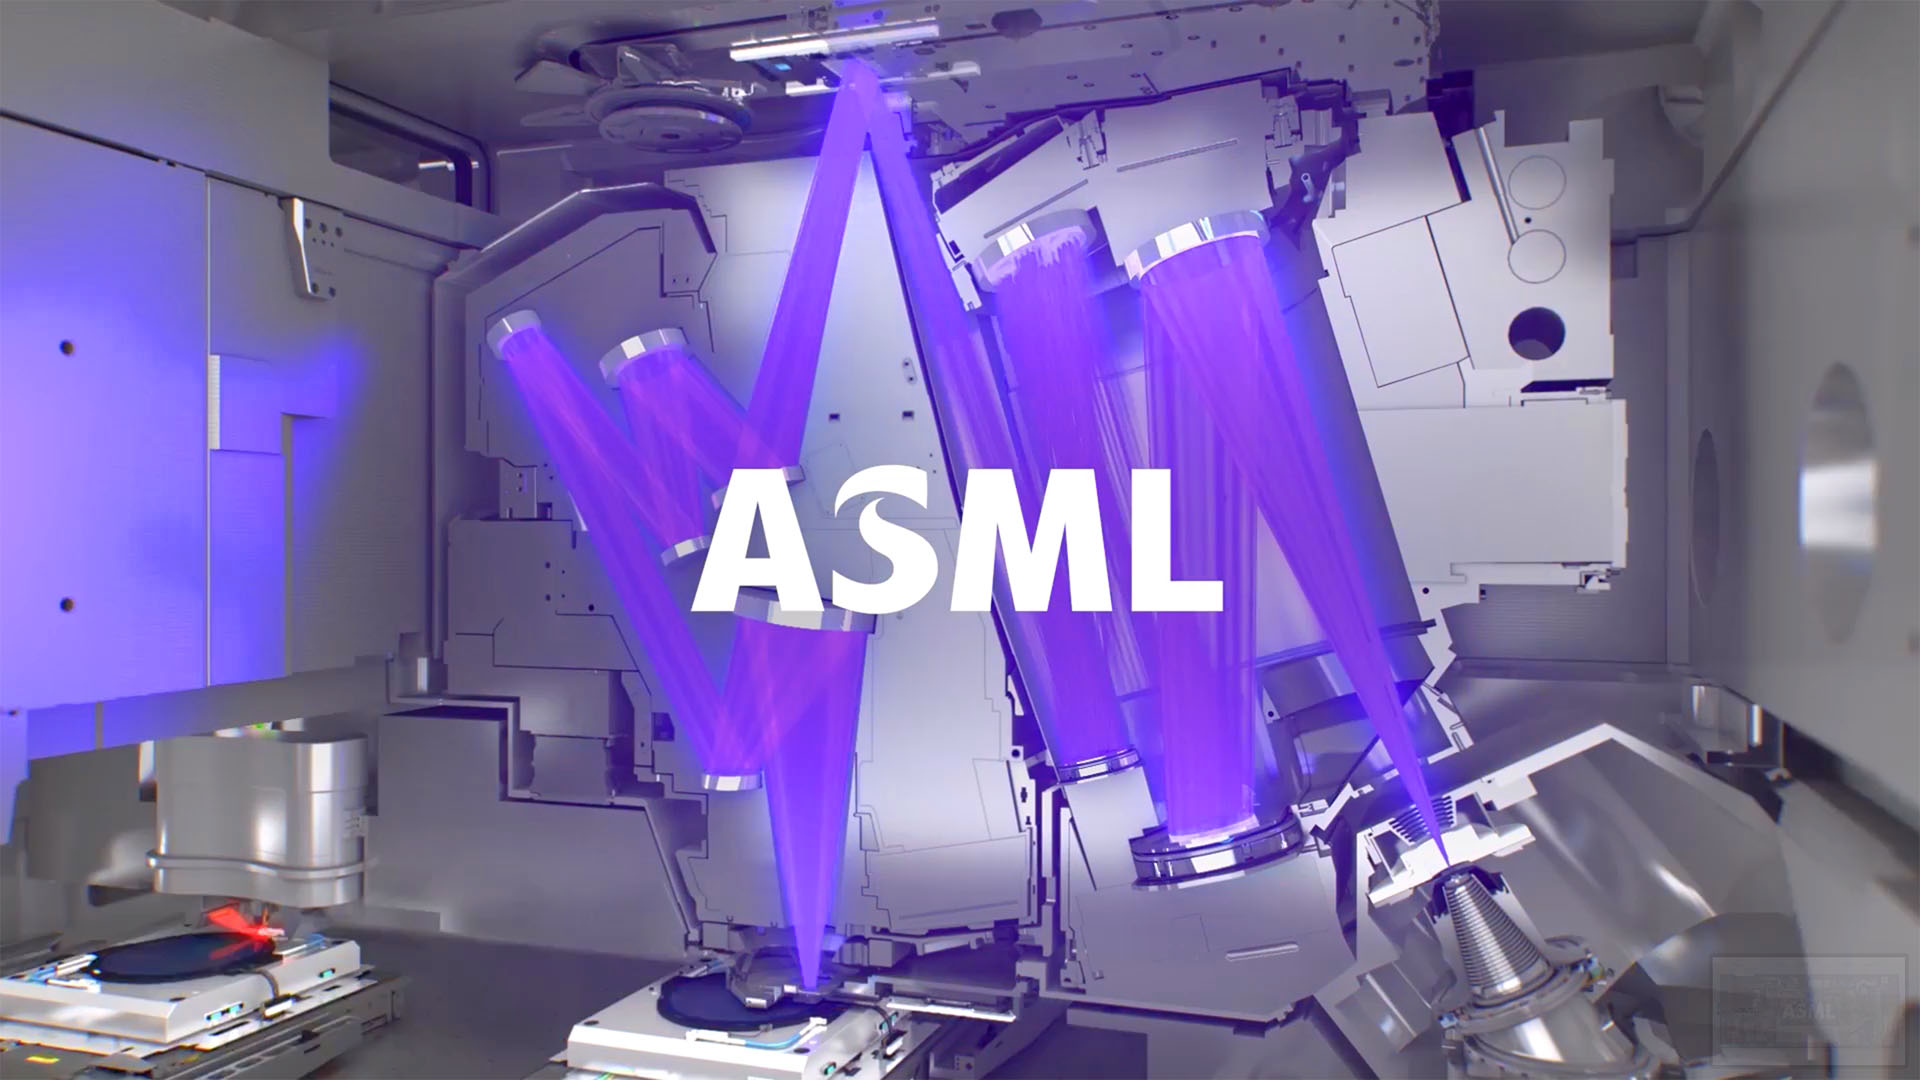 ASML The Smallest Ad